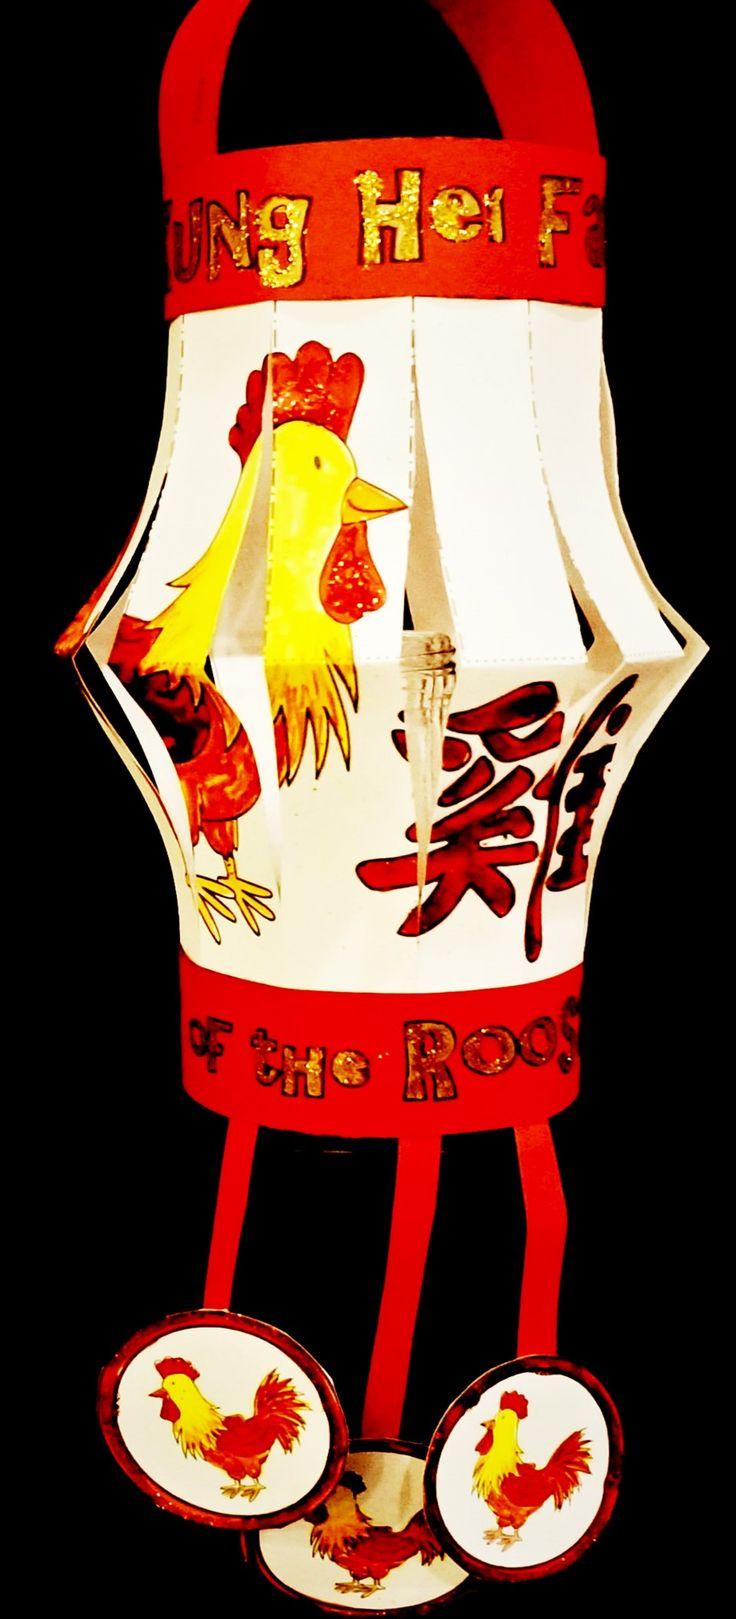 Lunar new year crafts - Chinese New Year 2017 Year Of The Rooster Chinese Lantern Craft